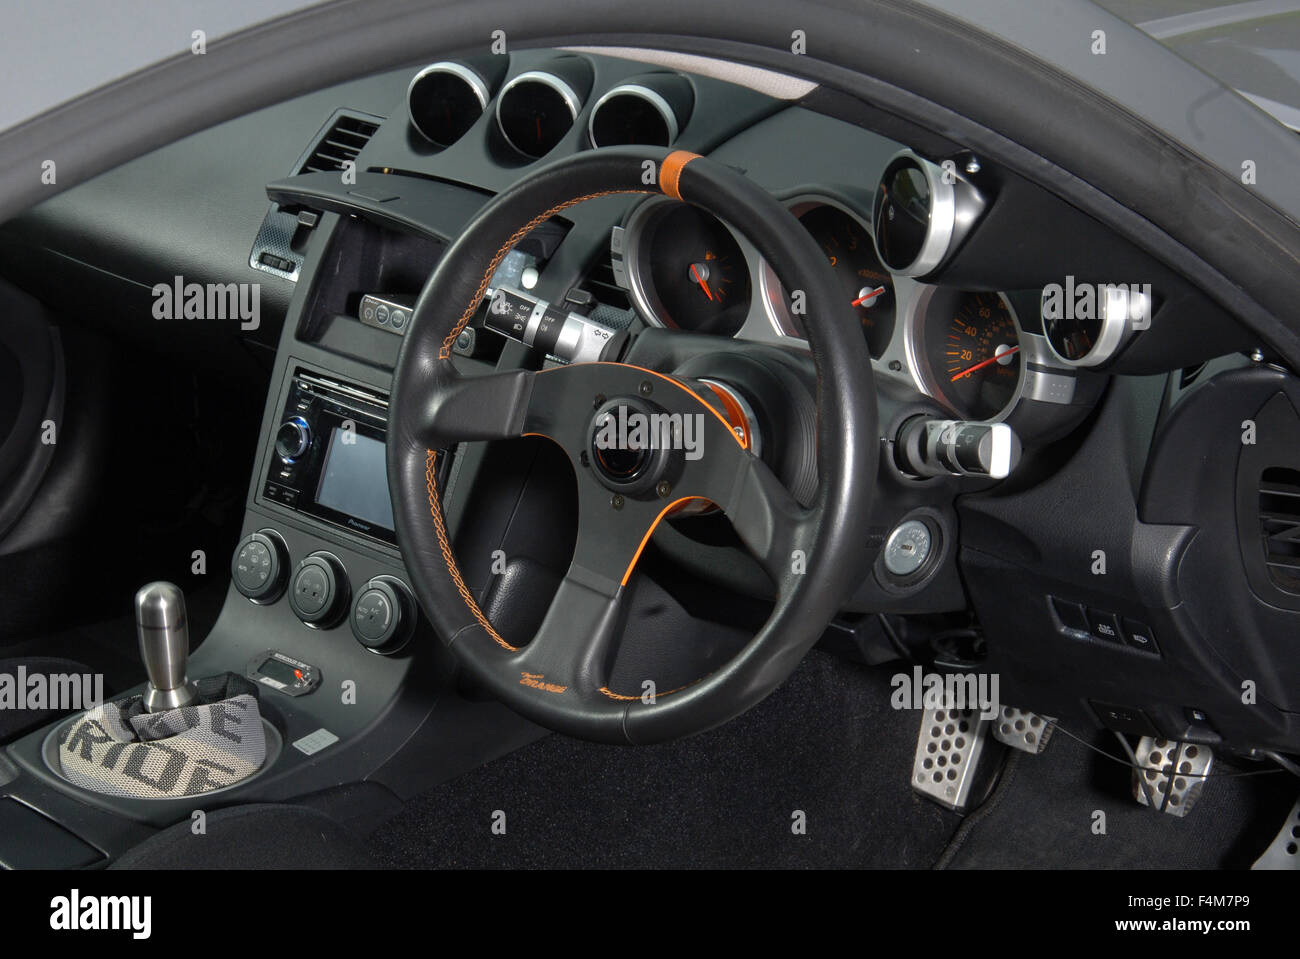 sports car interior nissan 350z tuned car stock photo. Black Bedroom Furniture Sets. Home Design Ideas